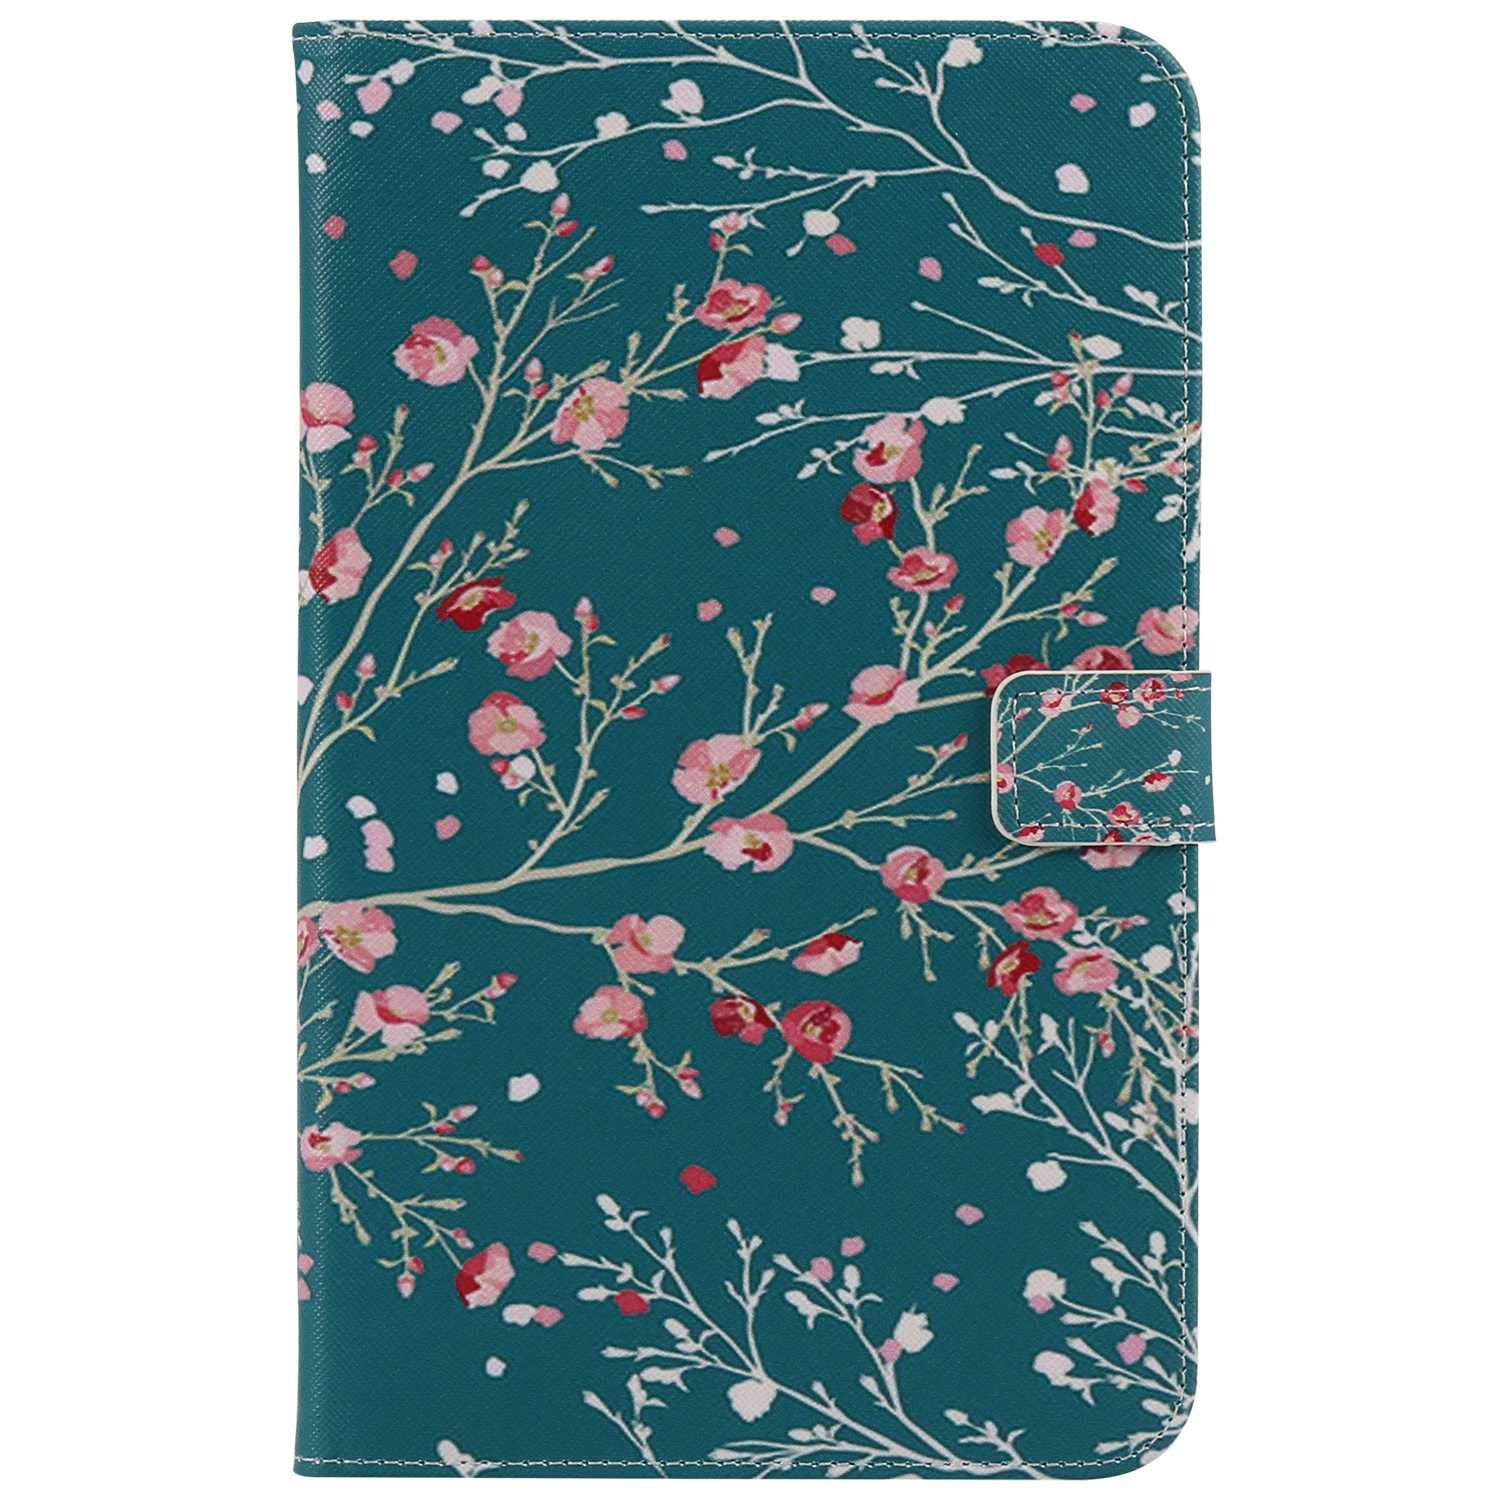 Bear Village Galaxy Tab 4 8.0 Inch Case, Anti Scratch Shell with Adjust Stand, Colorful Design Leather Stand Case for Samsung Galaxy Tab 4 8.0 Inch, Flower by Bear Village